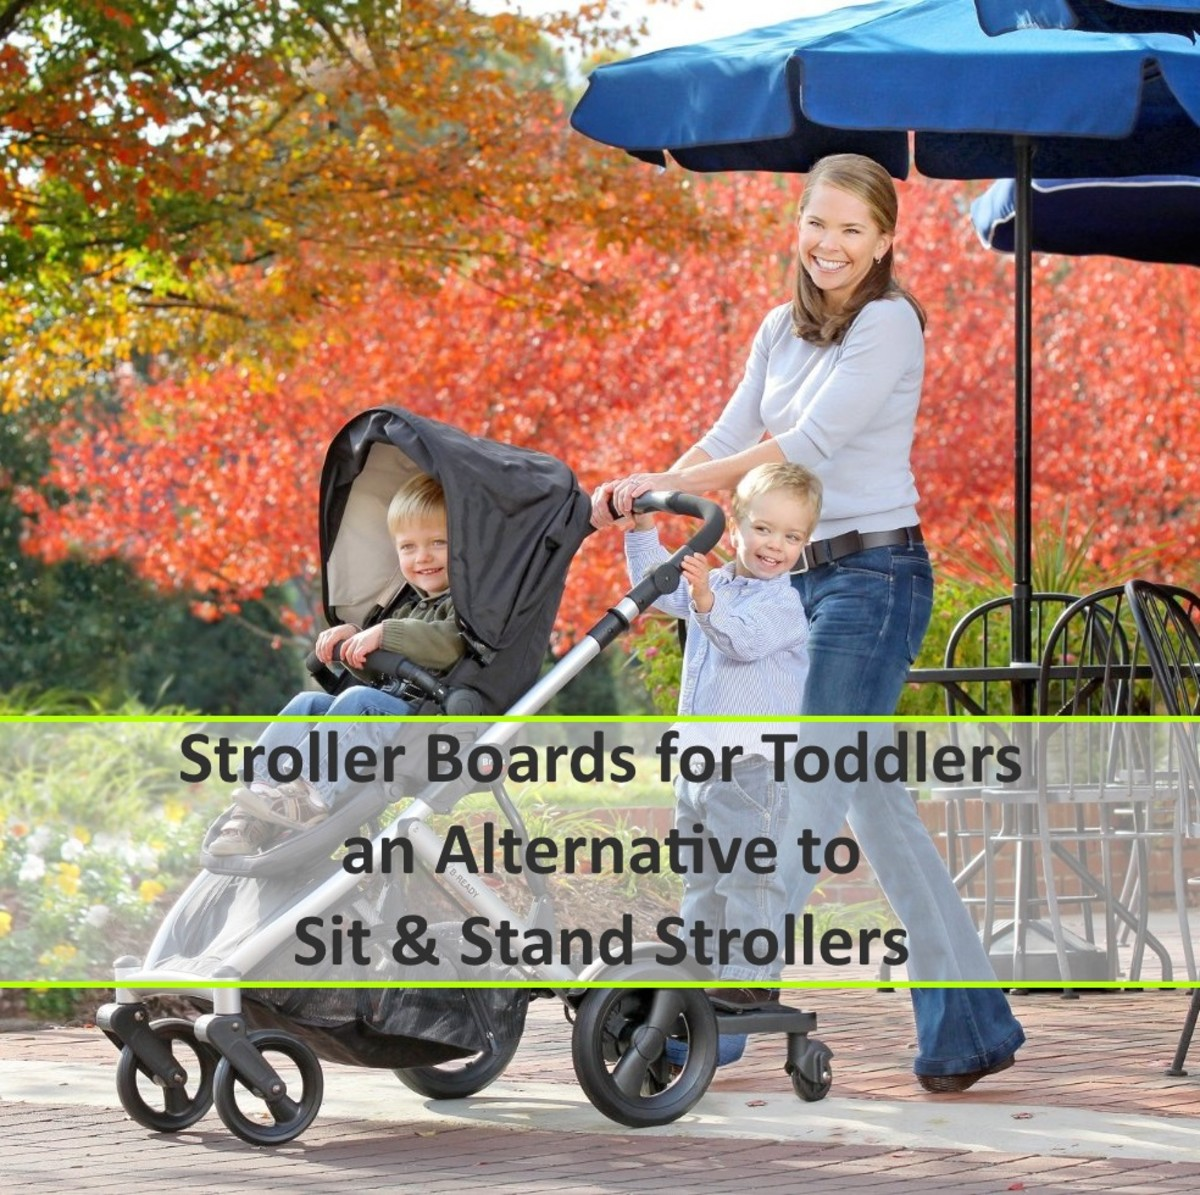 Universal Stroller Board Attachment For Toddlers 2015